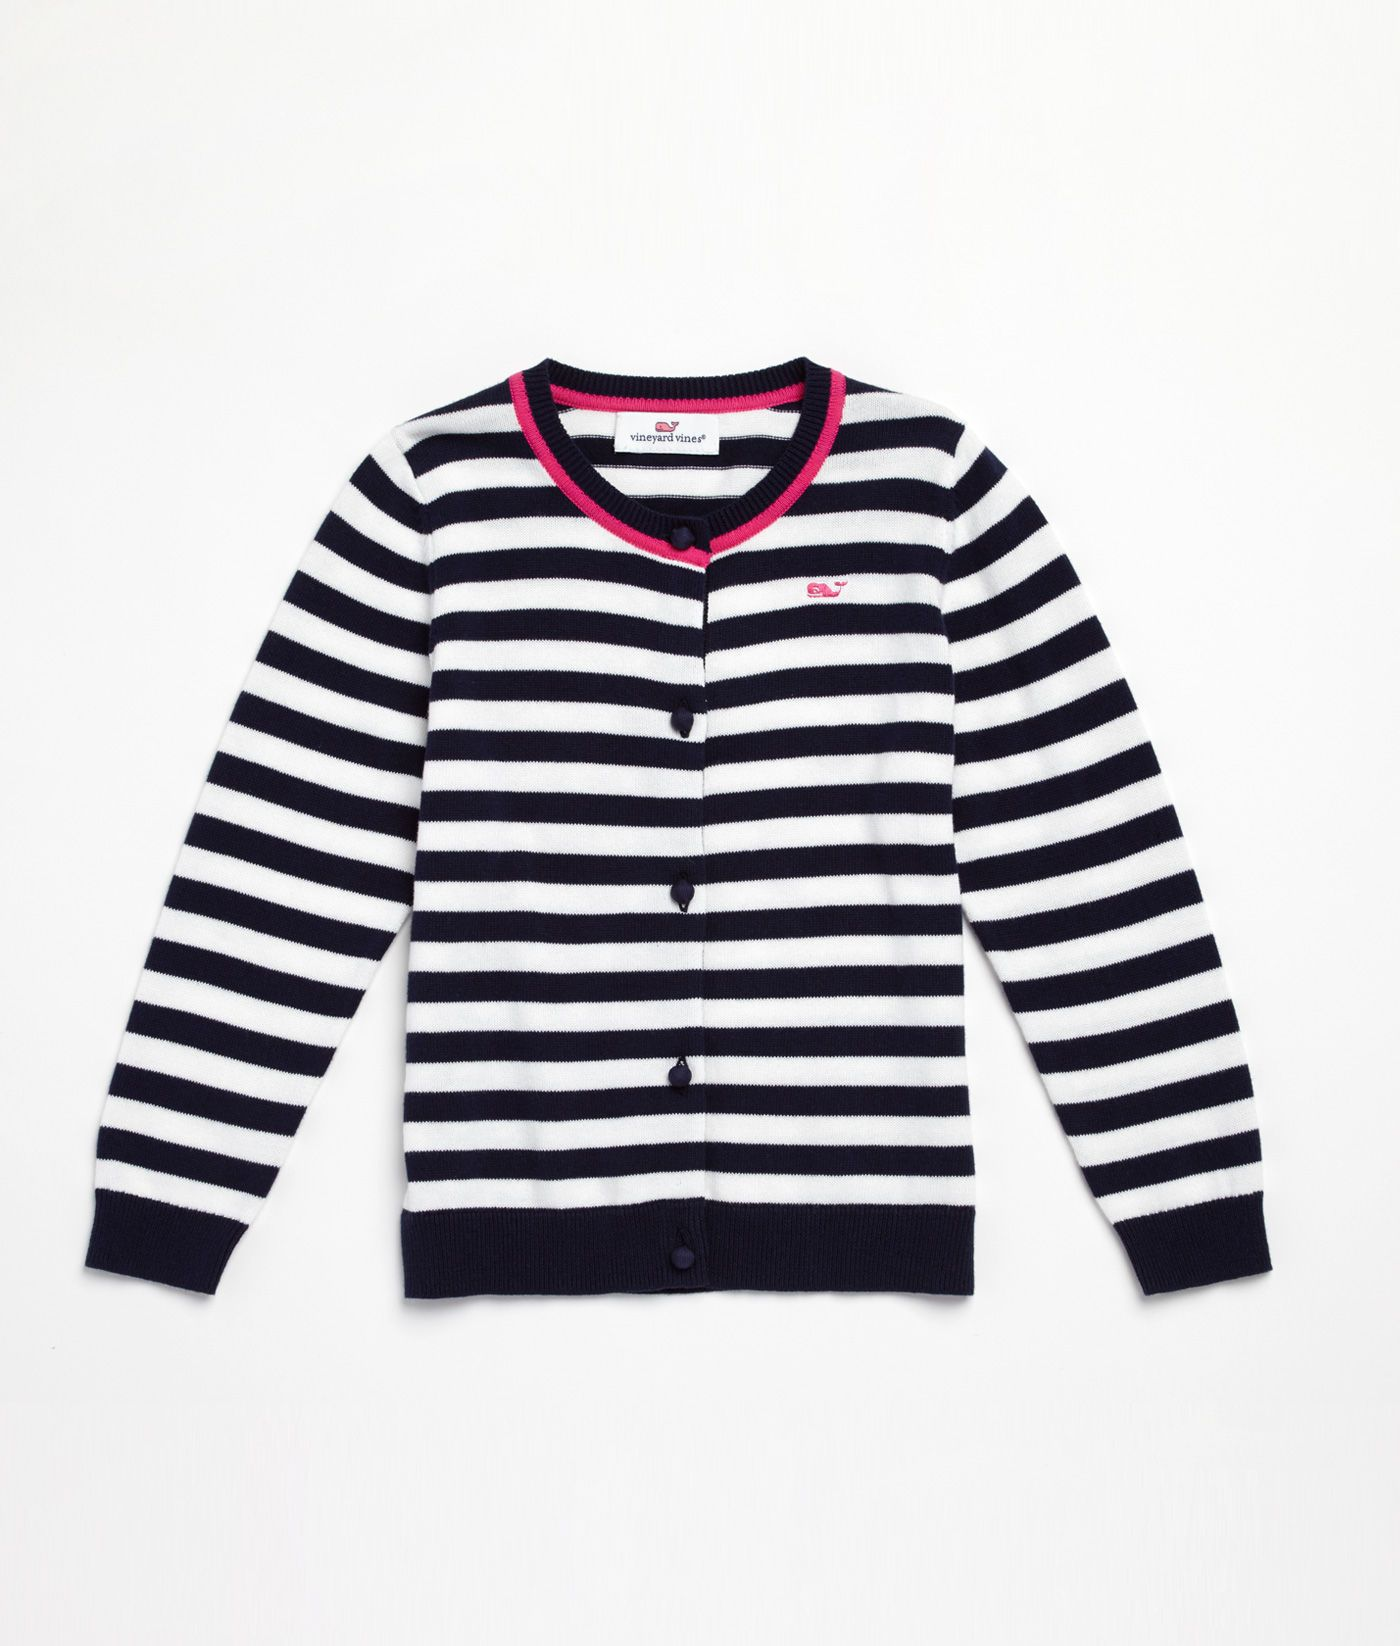 Shop Sweaters: Stripe Cotton Cardigan for Girls | Vineyard Vines ...